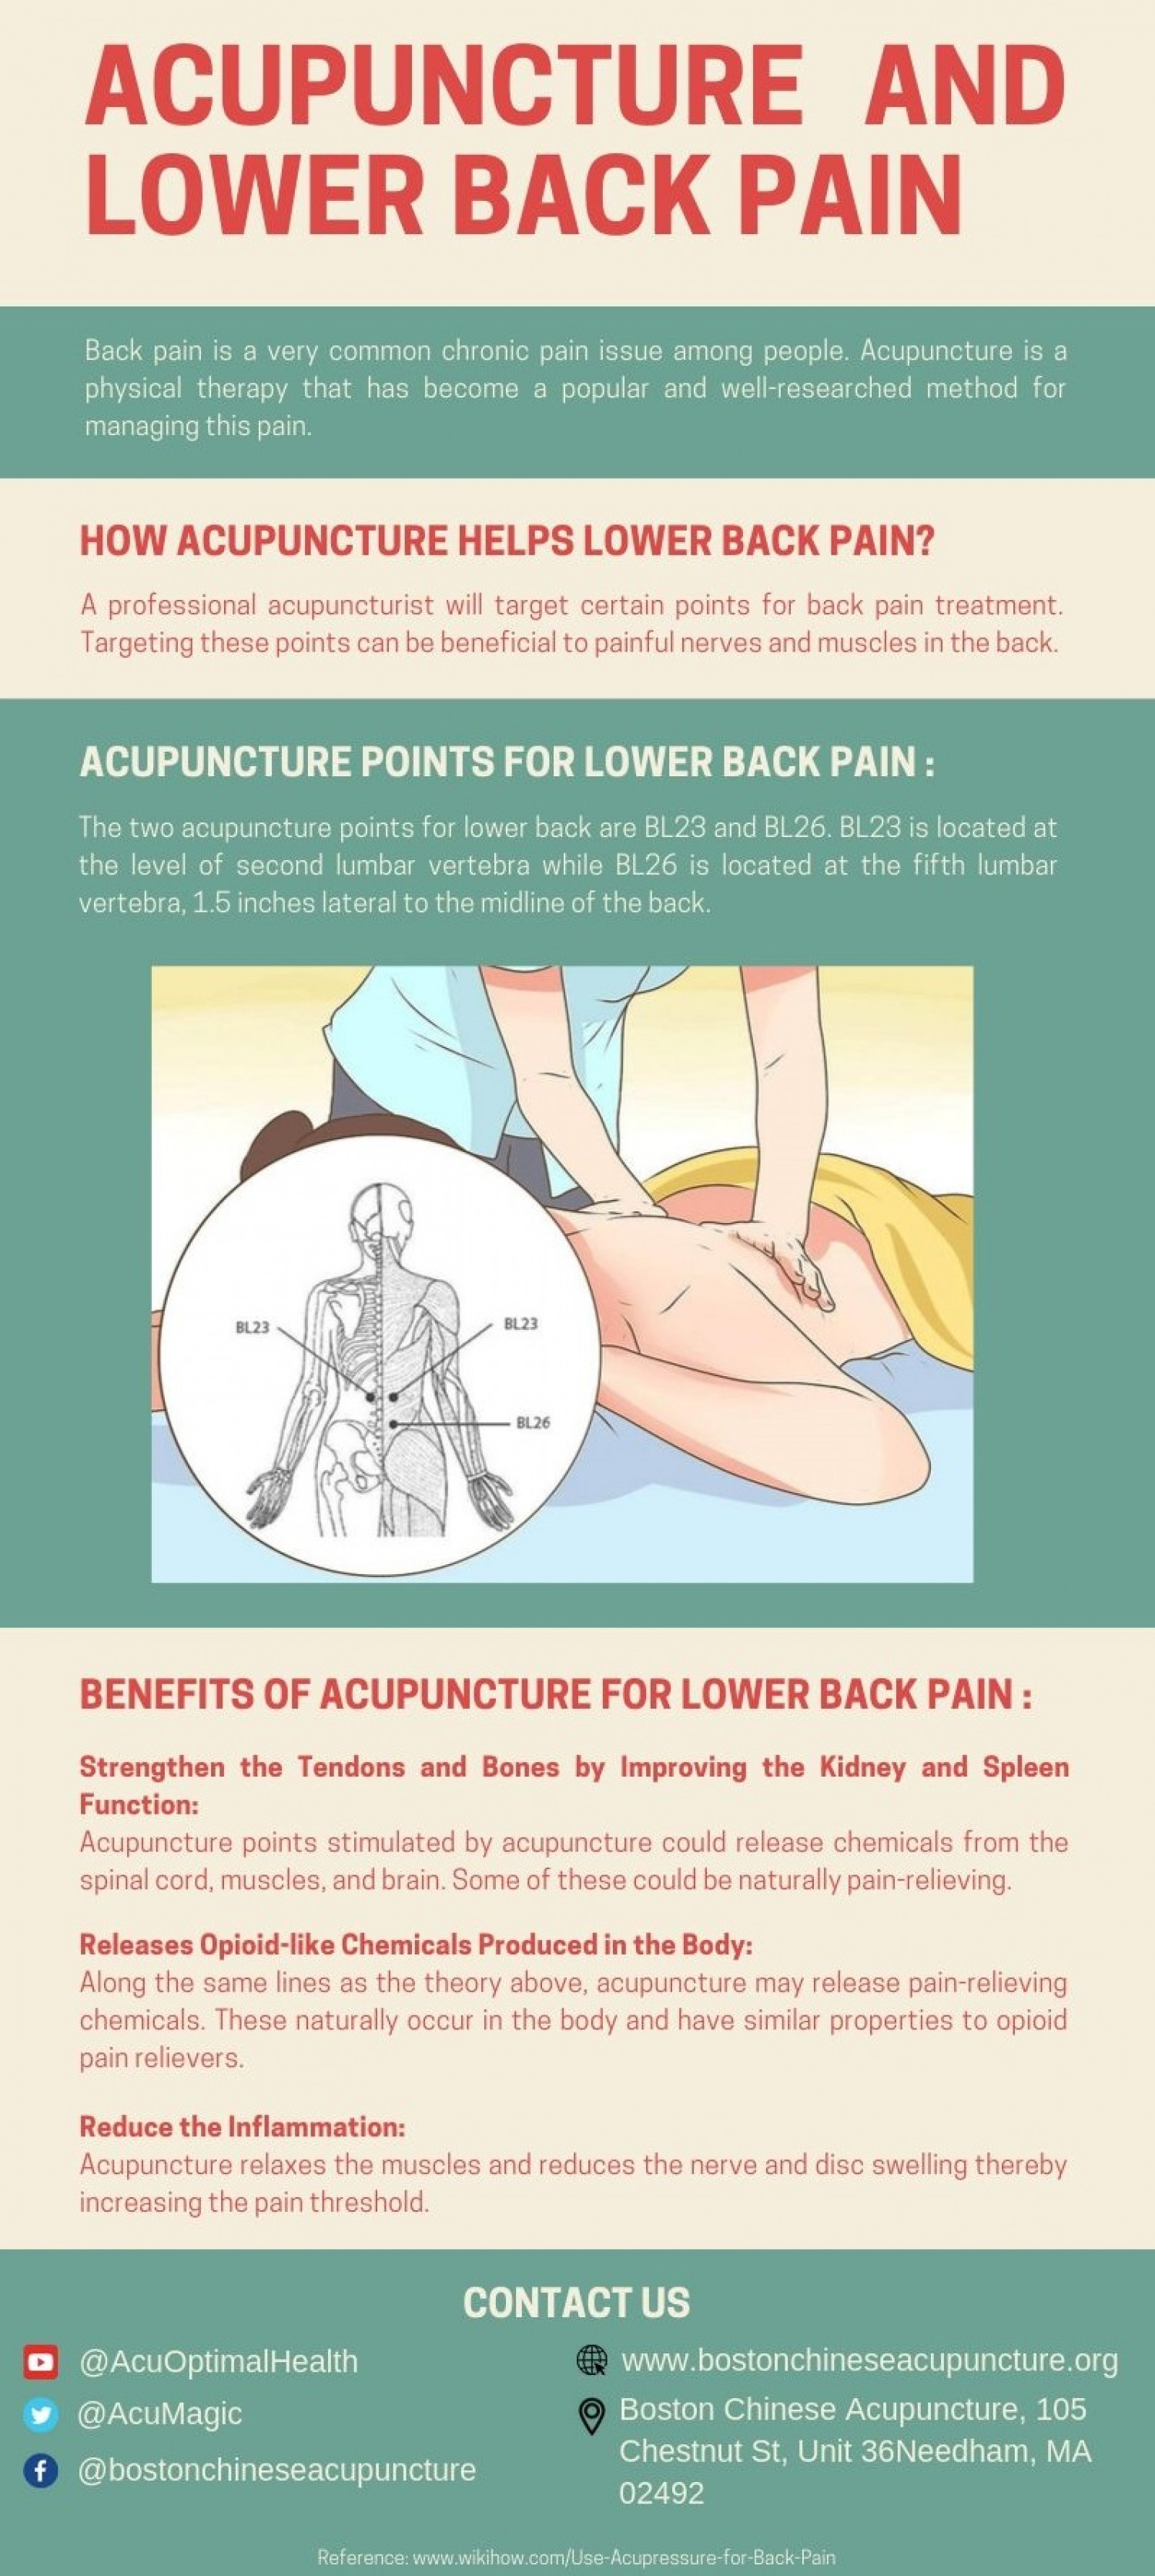 Acupuncture Points for Back Pain